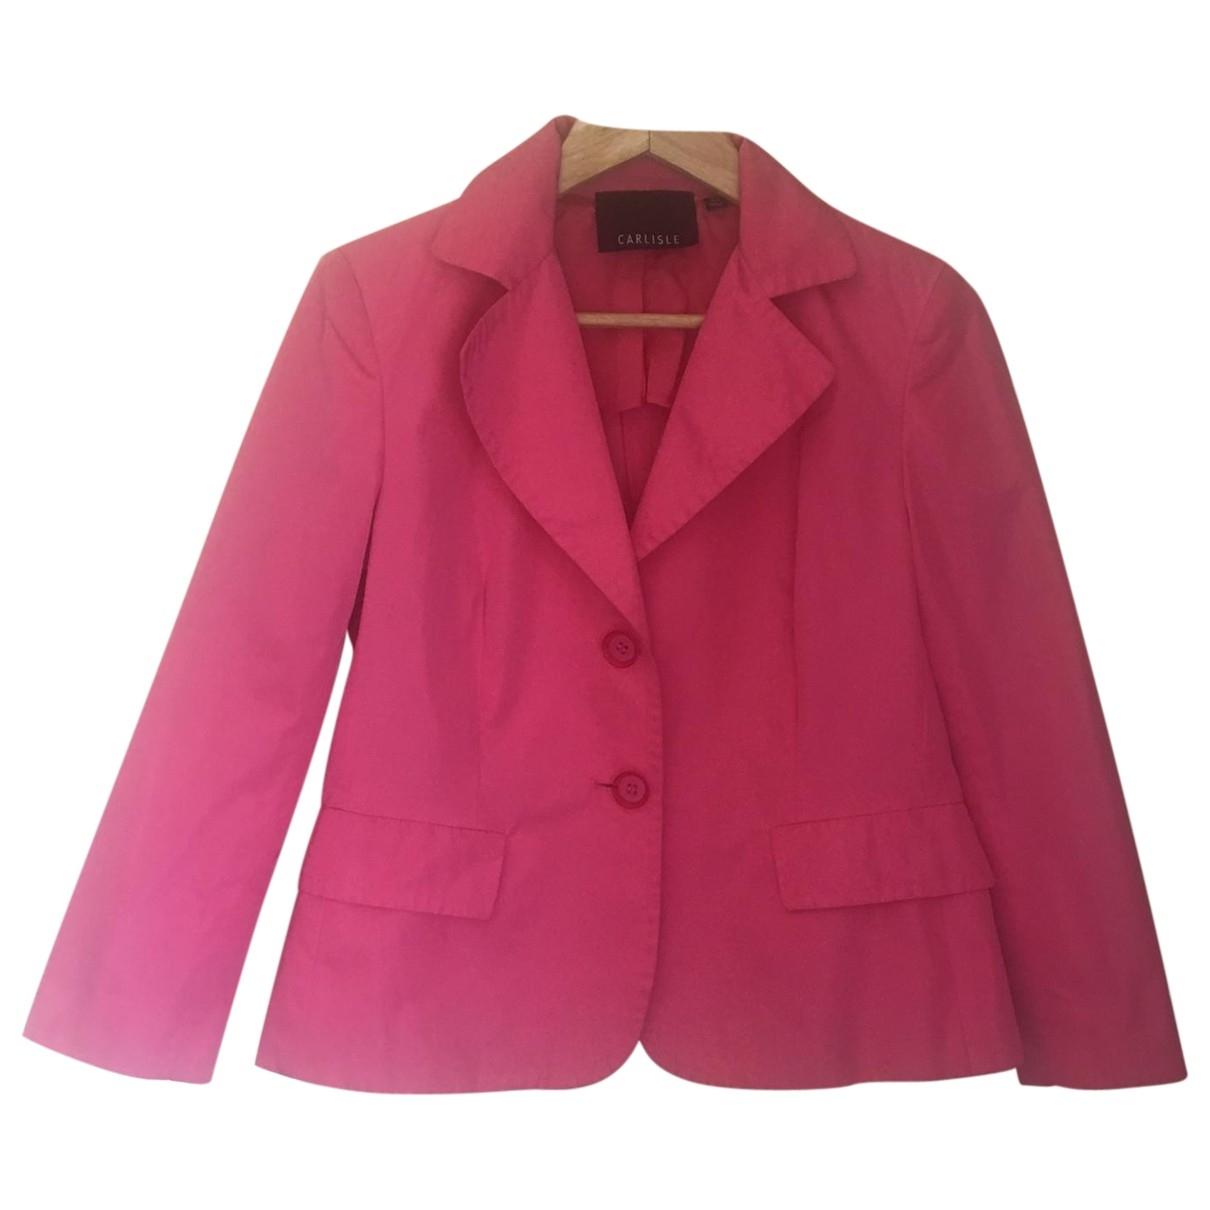 Non Signé / Unsigned Epaulettes Pink Cotton jacket for Women 6 UK